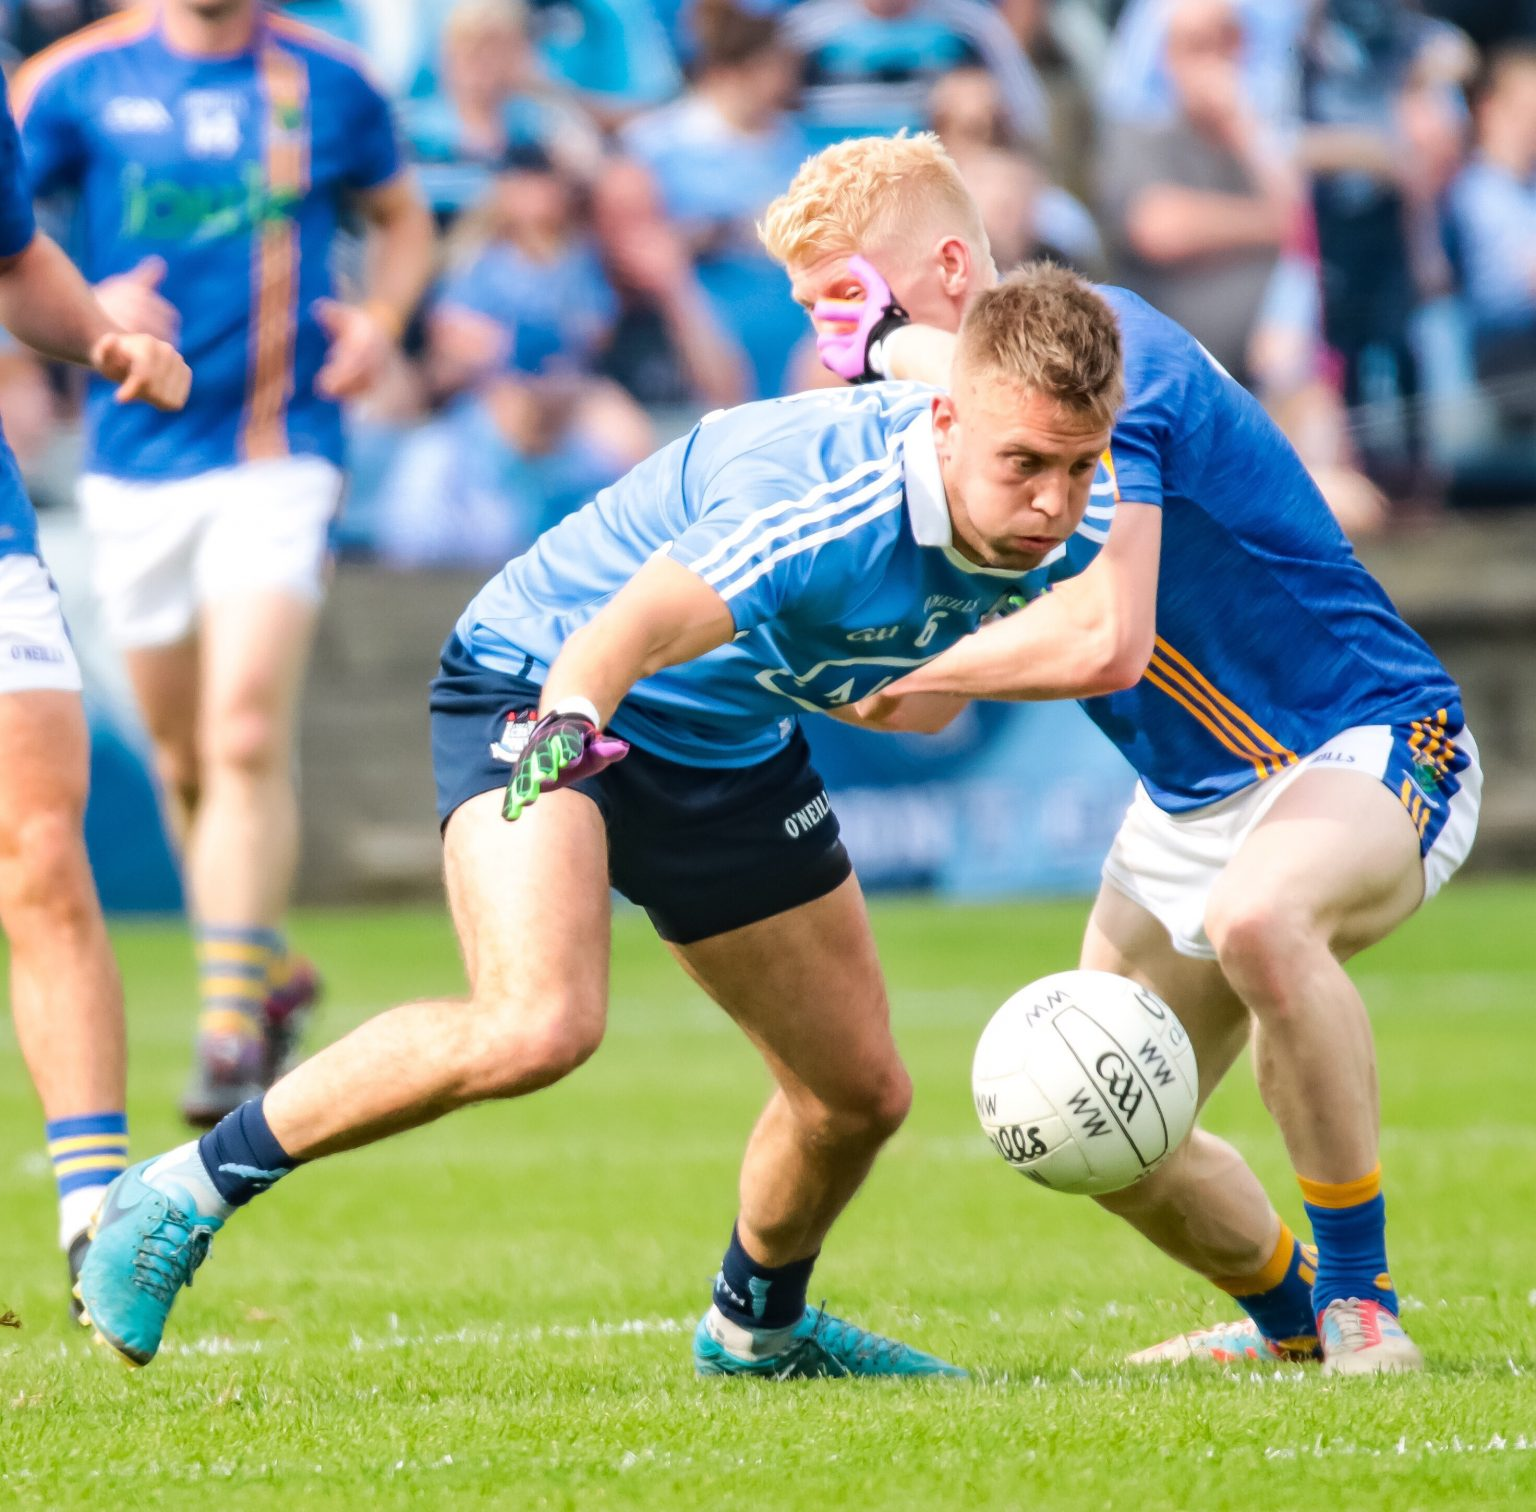 Dublin Footballer Jonny Cooper in a sky blue jersey battled for the ball against a Wicklow Player in a dark blue jersey with yellow stripes in Championship opener